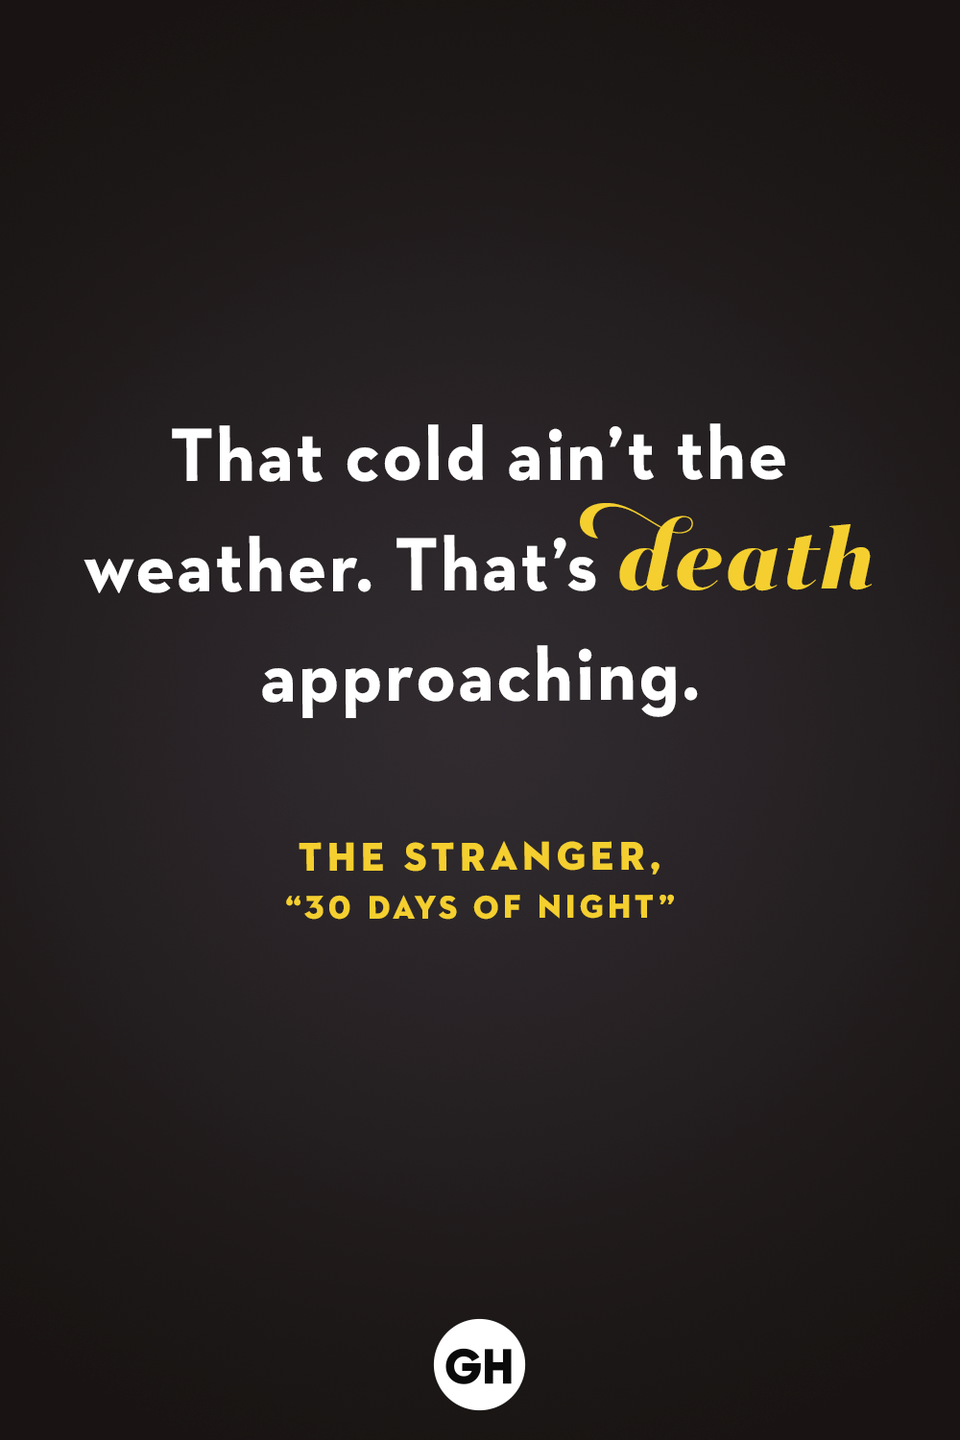 <p>That cold ain't the weather. That's death approaching. </p>